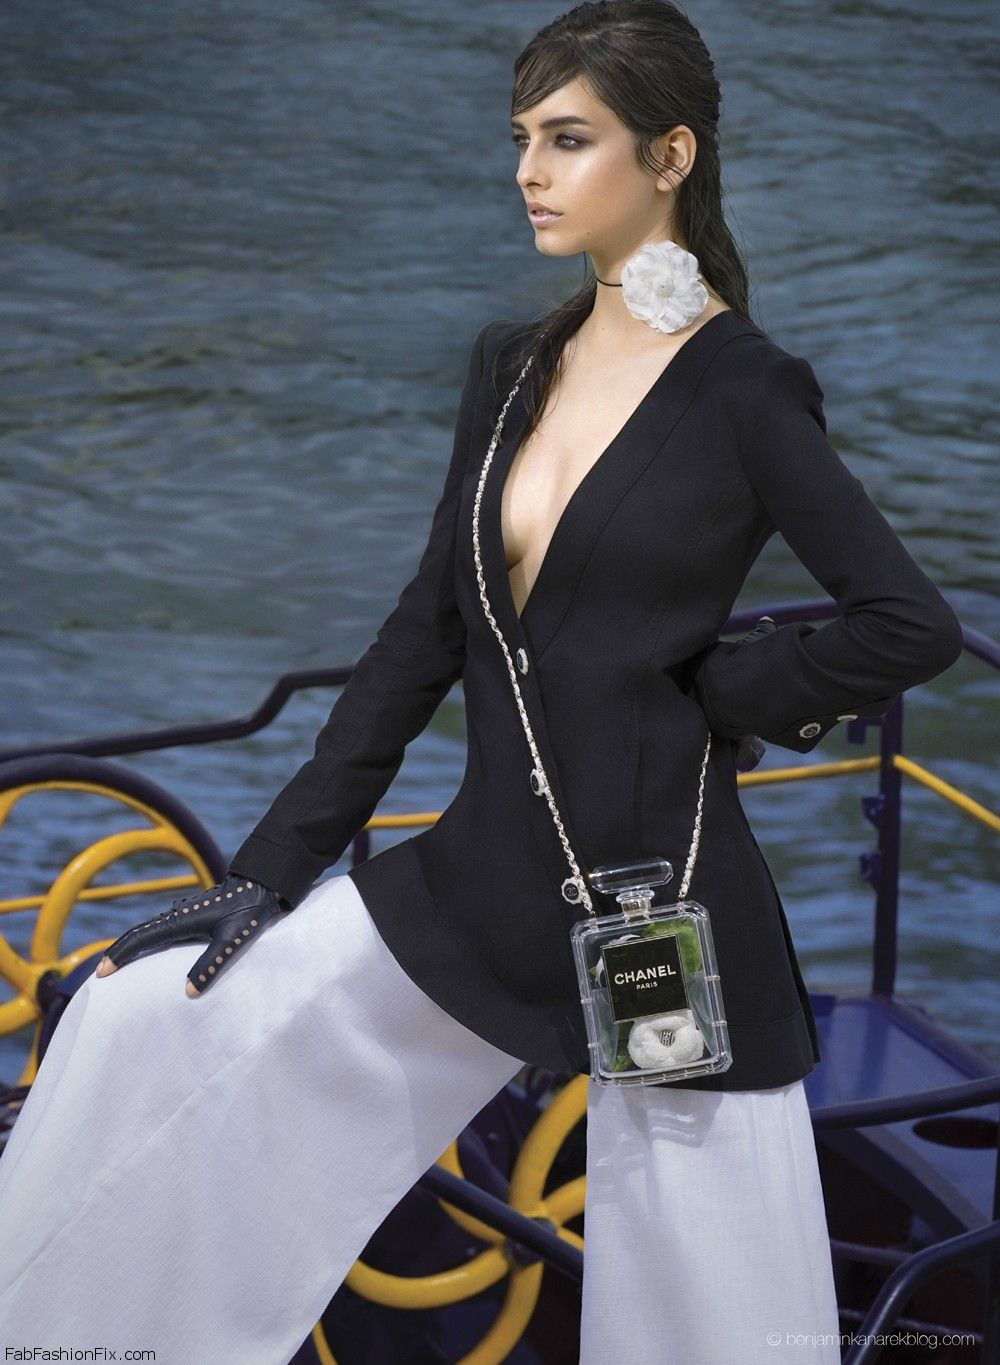 9-Linda-Kanyo-Chanel-Resort-Waters-Edge-Benjamin-Kanarek-Fashion-Magazine